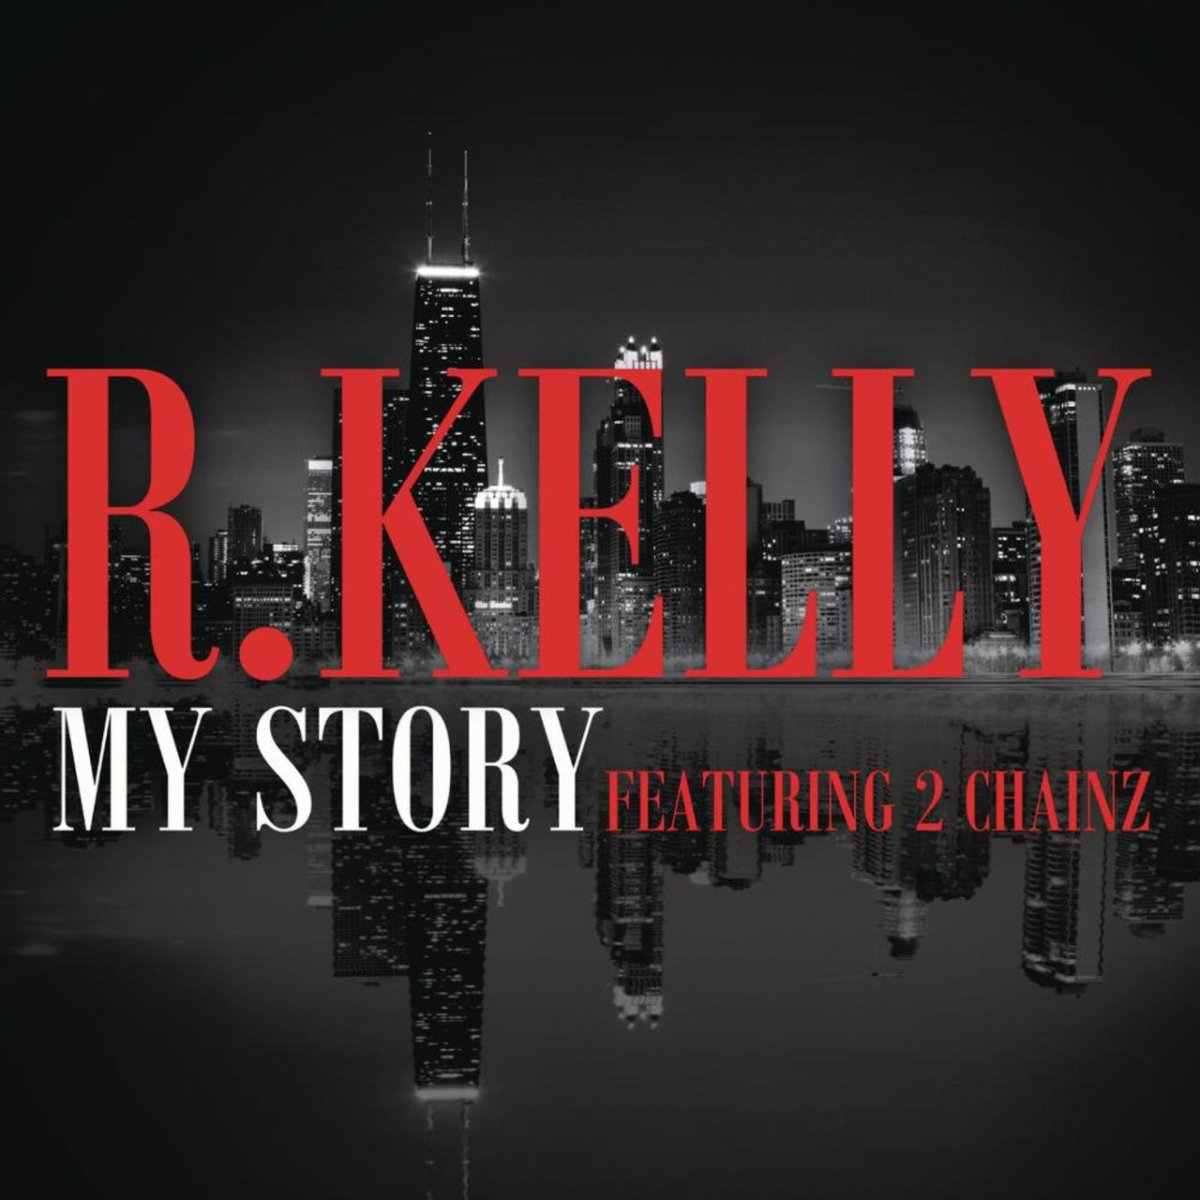 R. Kelly - My Story (ft. 2 Chainz) (Cover)